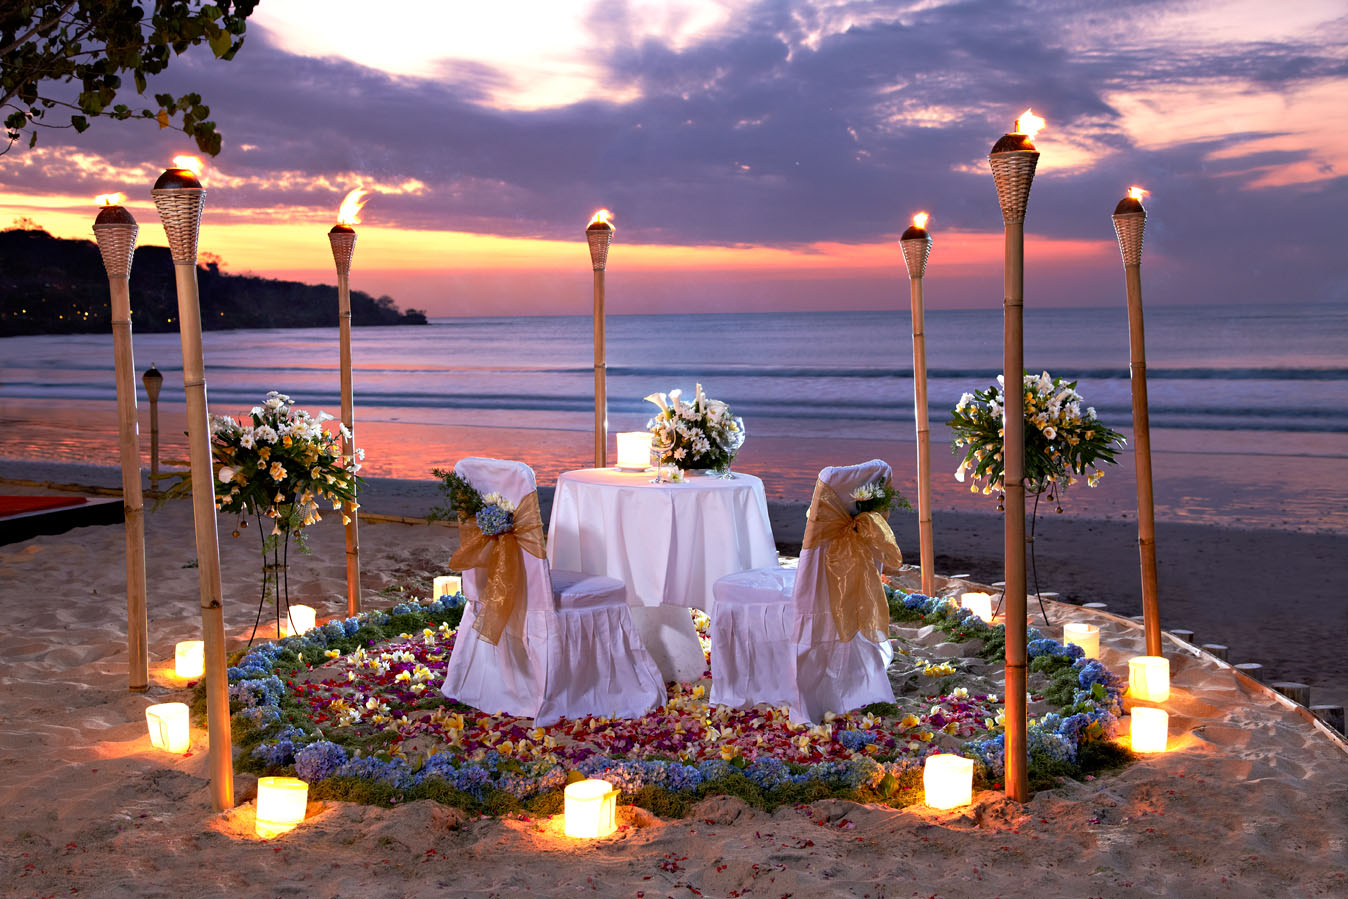 Restaurants kupu kupu jimbaran for Romantic dinner